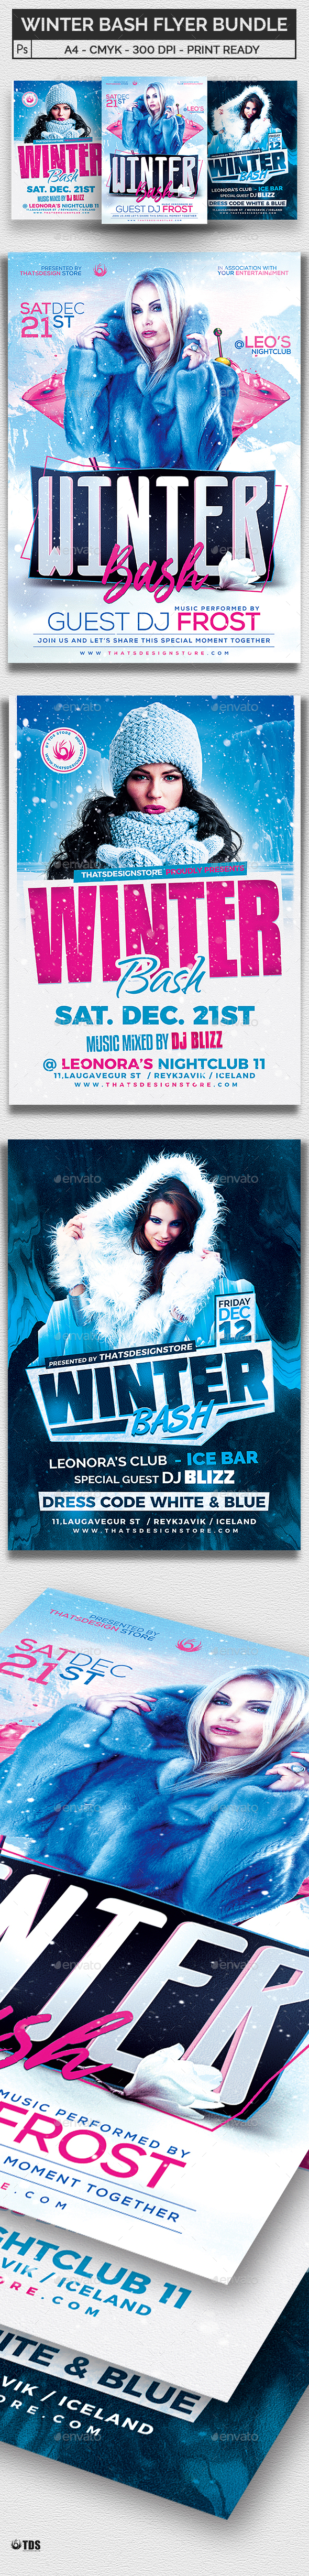 Winter Bash Flyer Bundle - Clubs & Parties Events